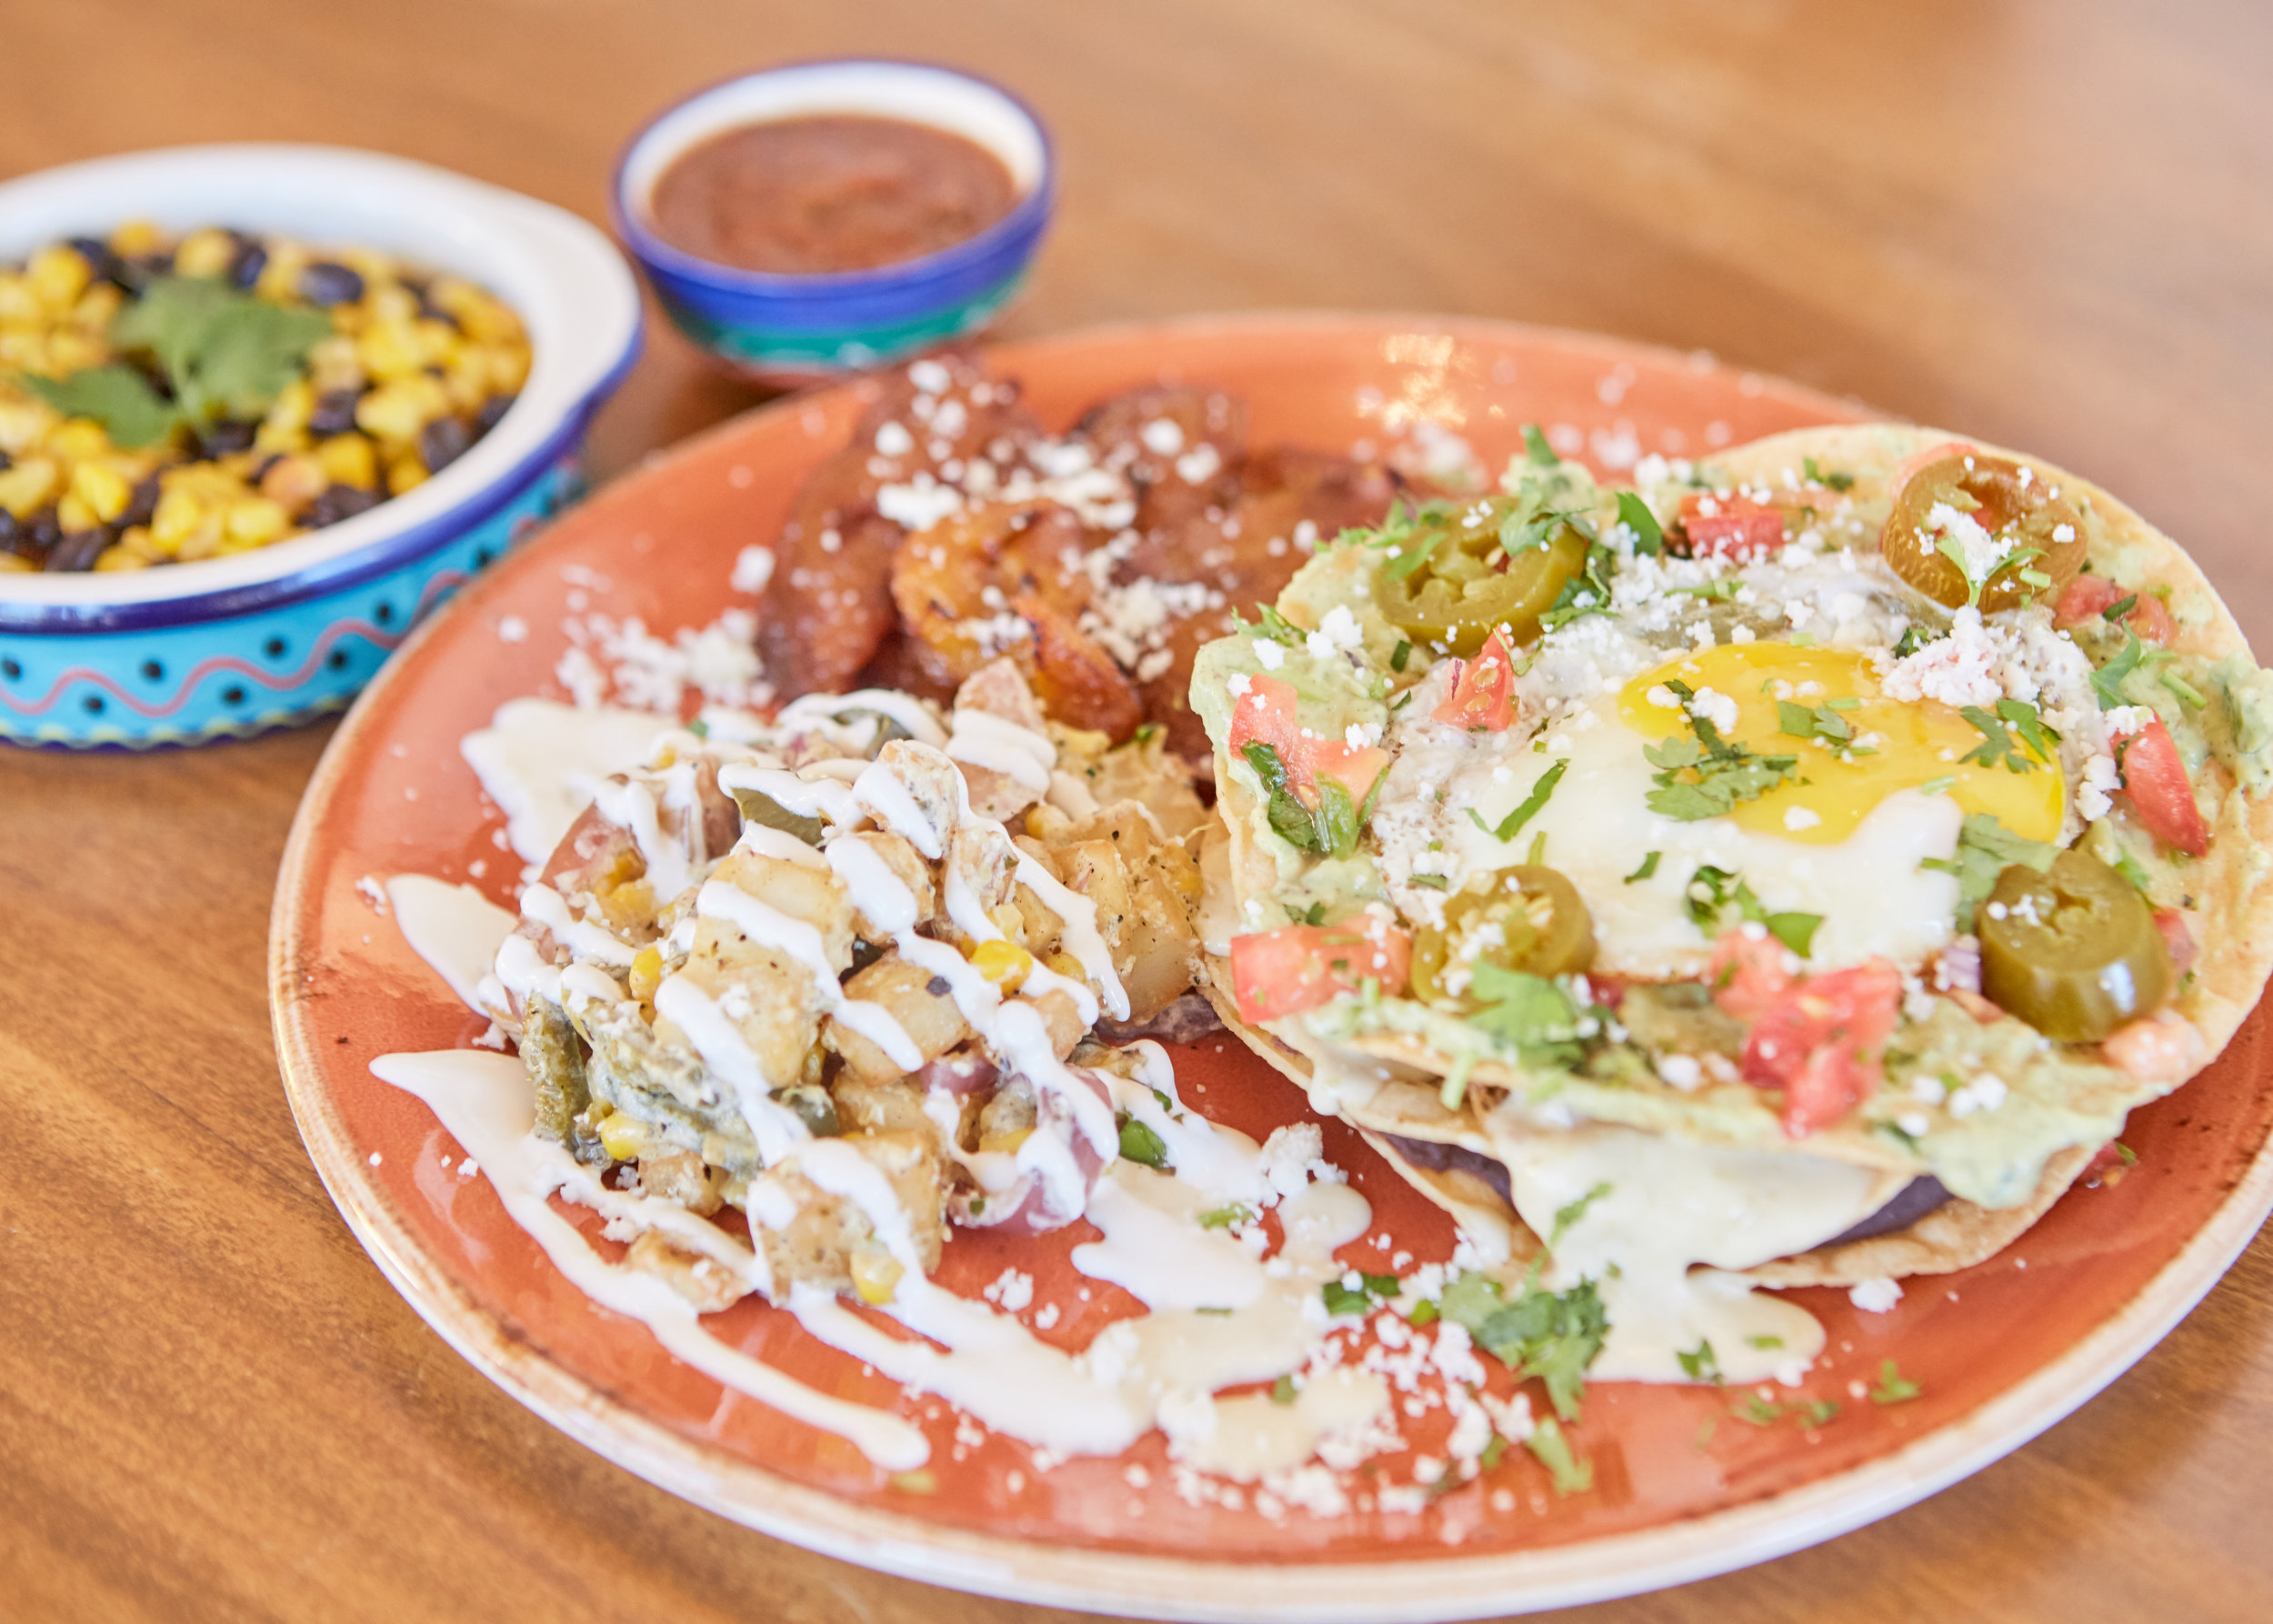 WEEKEND BRUNCH $9.99 - SERVED ON WEEKENDS 'TIL 3PMMIGAS Tortilla strips scrambled with two eggs, chorizo, pico de gallo, Oaxaca cheese, and topped with cilantro and cotija cheese; served with black beans, Yucatan potatoes and two flour tortillasOCHO STACK Three crispy corn tortillas stuffed with black beans, asadero cheese, carnitas, and topped with an egg, avocado crema; served with Yucatan potatoes and plantainsHUEVOS RANCHEROS Two corn tortillas topped with black beans, fried eggs, tomatillo salsa, queso fresco; served with Yucatan potatoes and plantainsBUENOS DIAS Breakfast potatoes and brisket cooked in a Argentinian sauce and topped with a fried egg, cilantro, and Mexican crema; served with flour tortillas